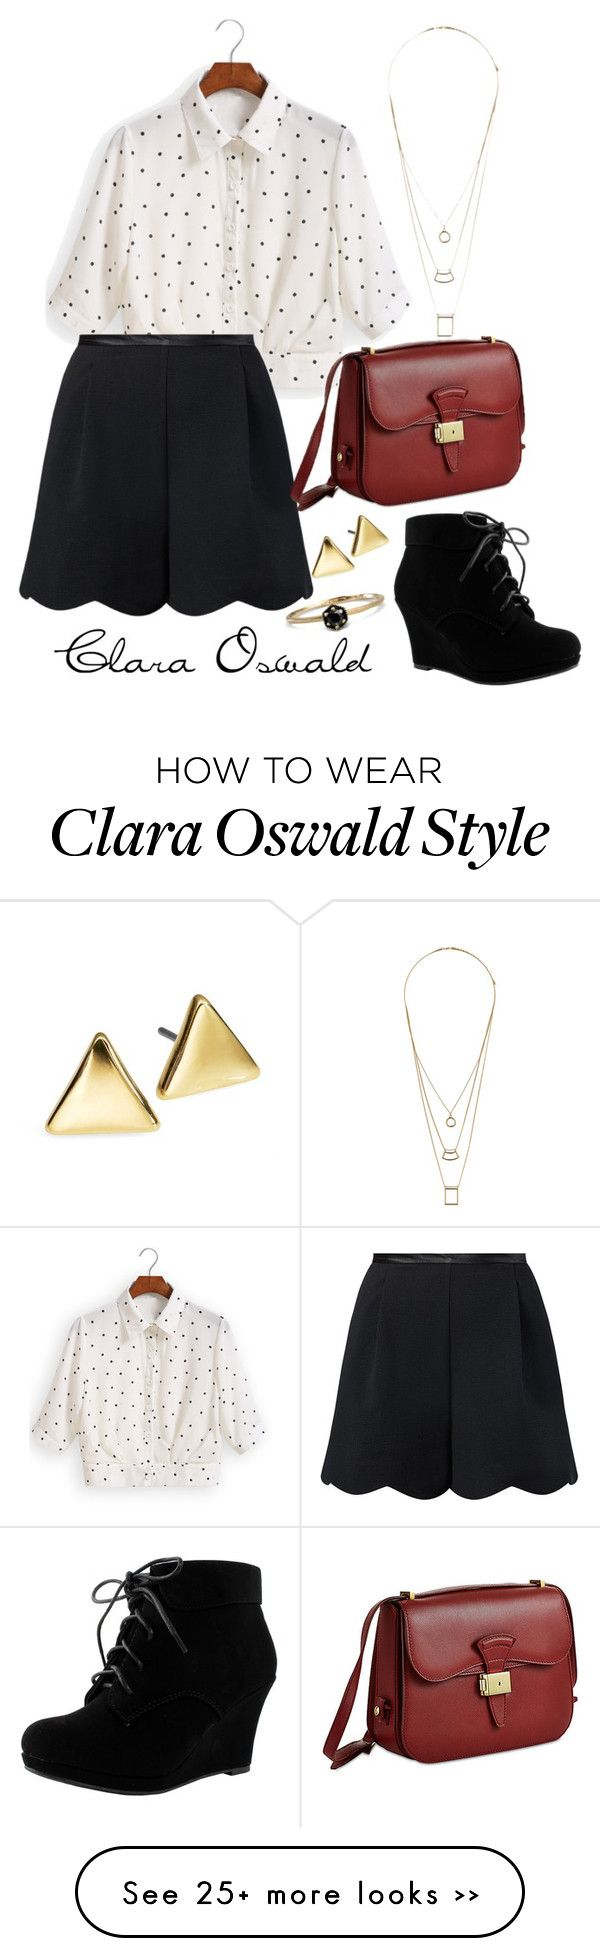 """Clara Oswald inspiration"" by whimsicalfangirl on Polyvore                                                                                                                                                                                 More"